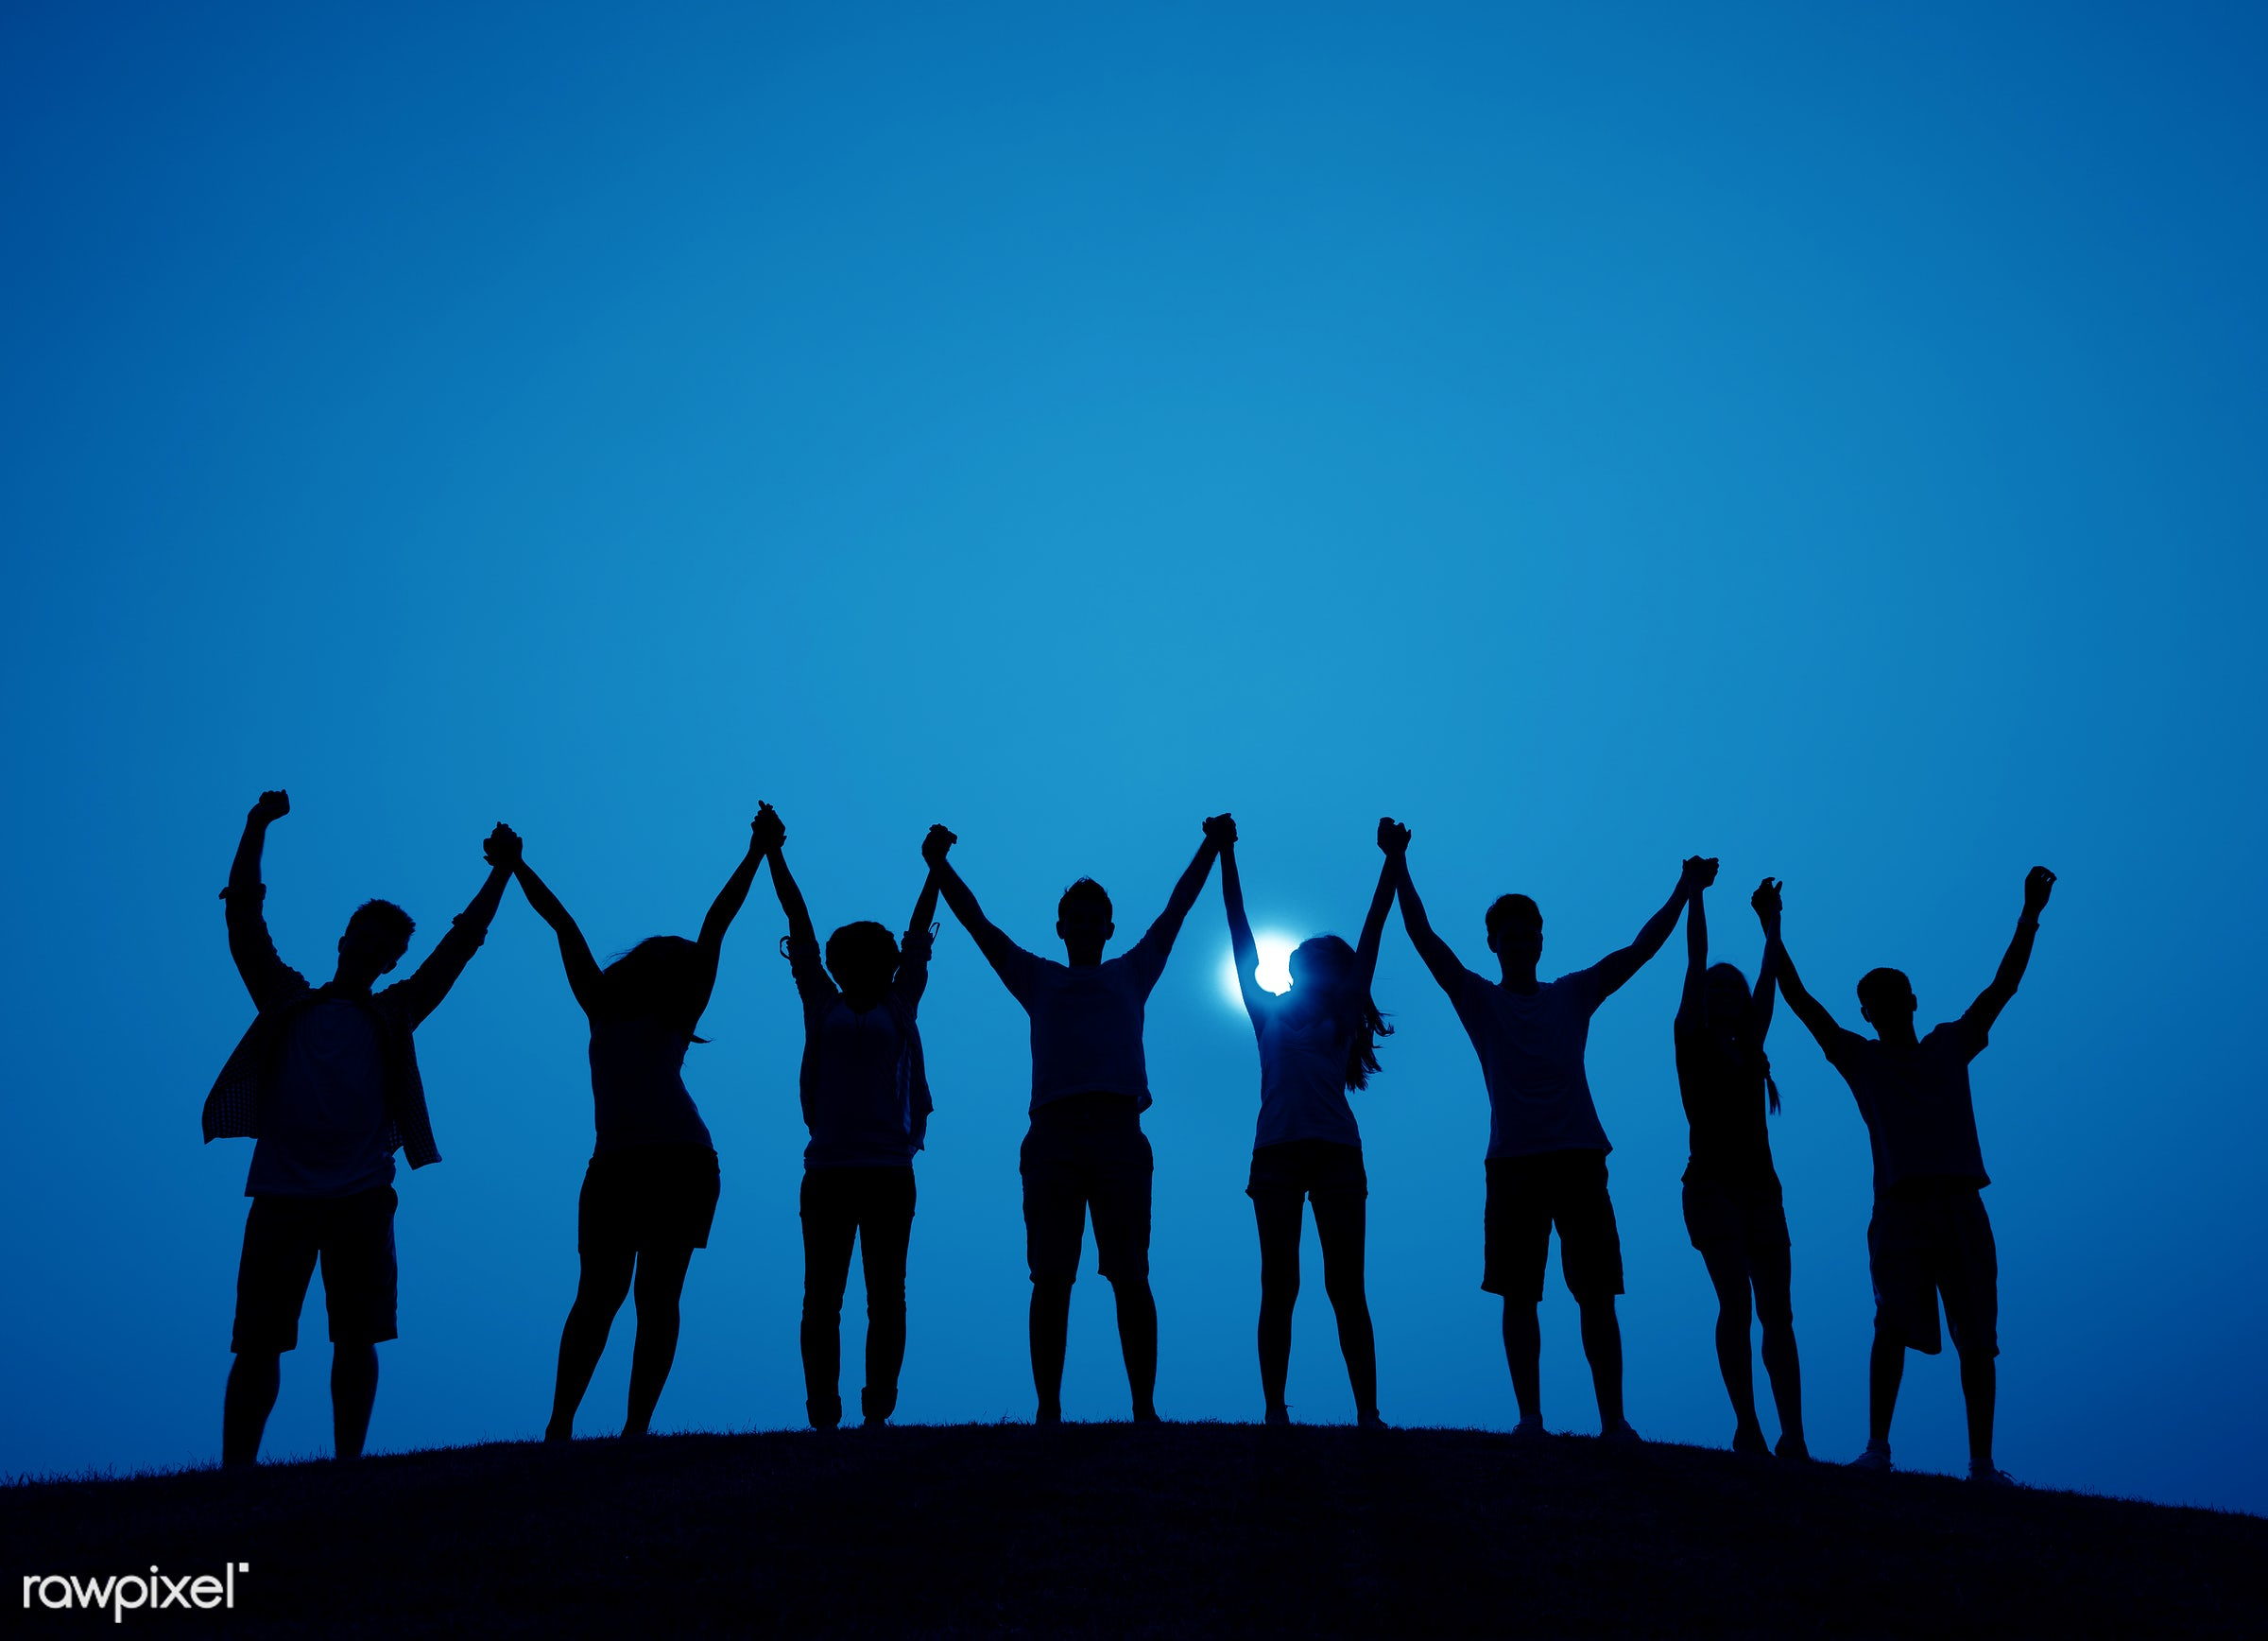 a, achievement, achievement, arms outstretched, arms outstretched, arms raised, arms raised, backlit, casual, casual,...